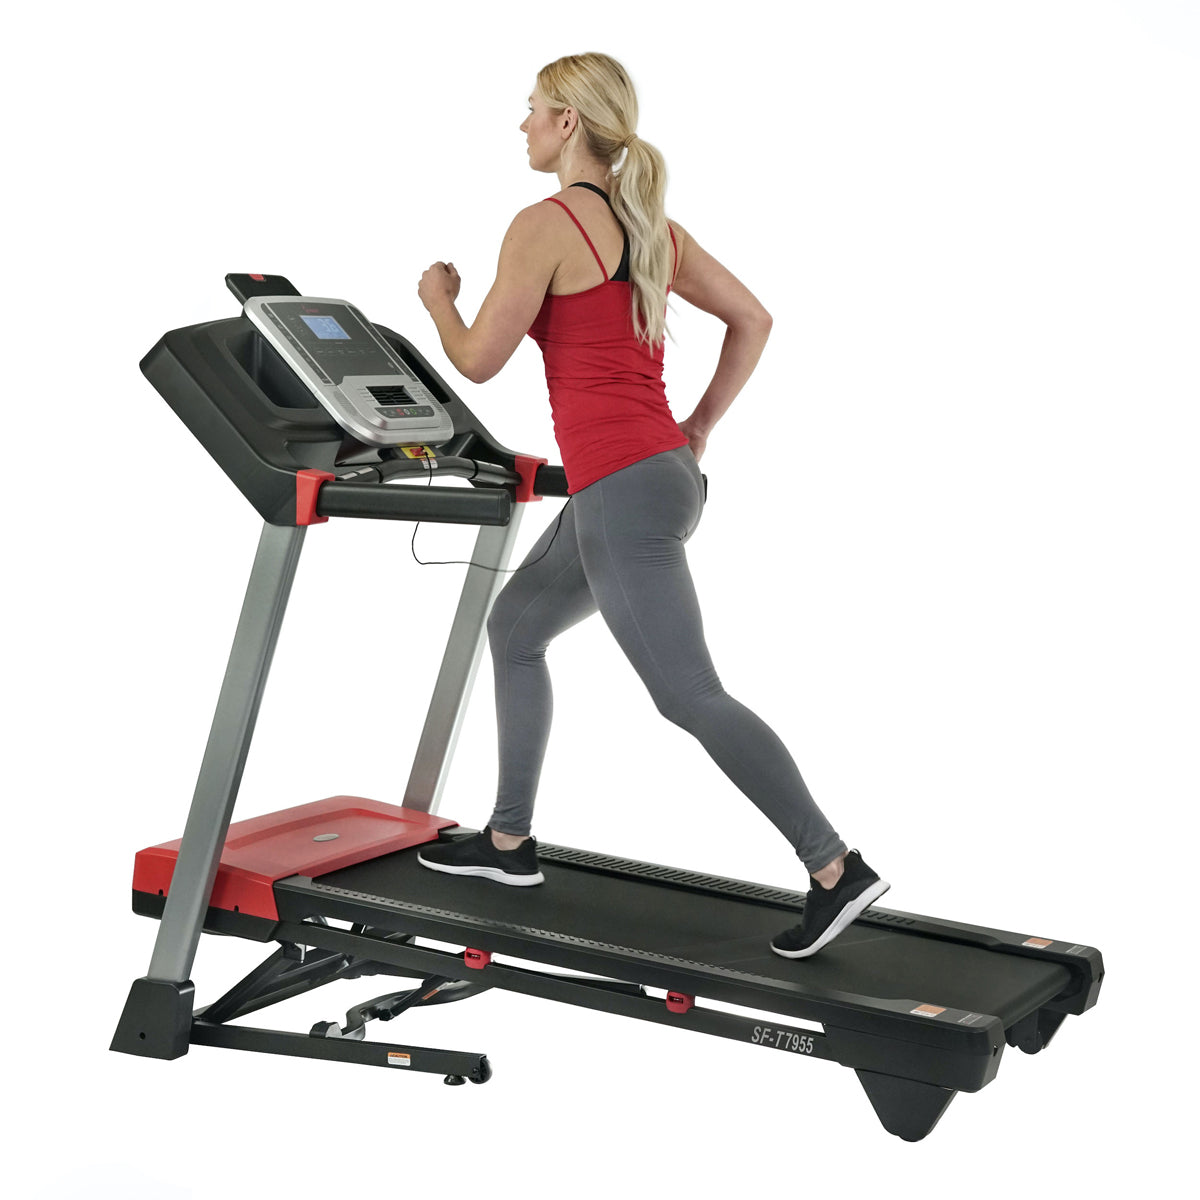 sunny-health-fitness-treadmills-evo-fit-incline-treadmill-bluetooth-dual-device-holders-SF-T7955-steep-incline